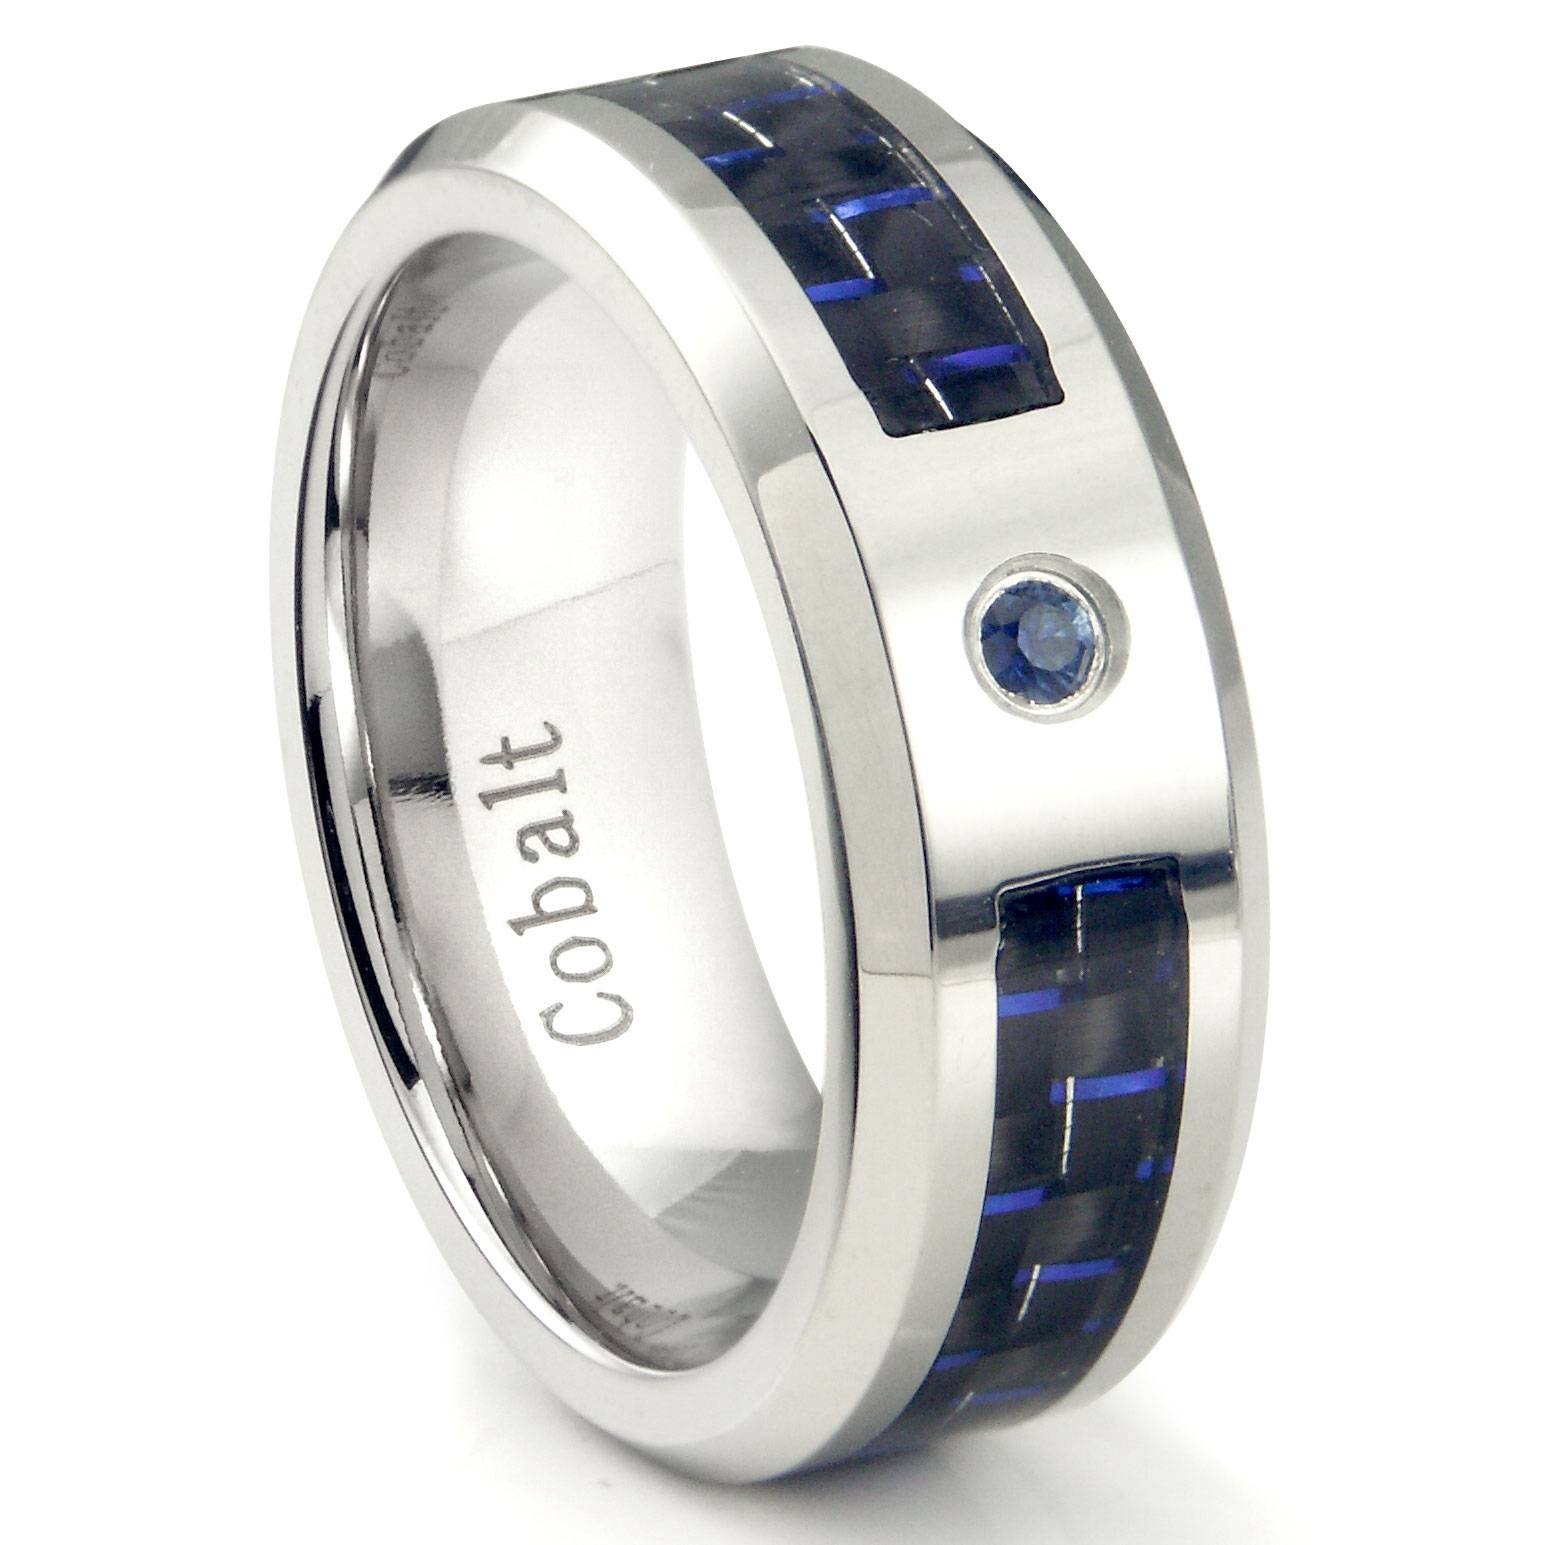 Cobalt Chrome 8Mm Blue Sapphire & Blue Carbon Fiber Inlay Wedding Throughout Men's Wedding Bands With Blue Sapphire (View 6 of 15)